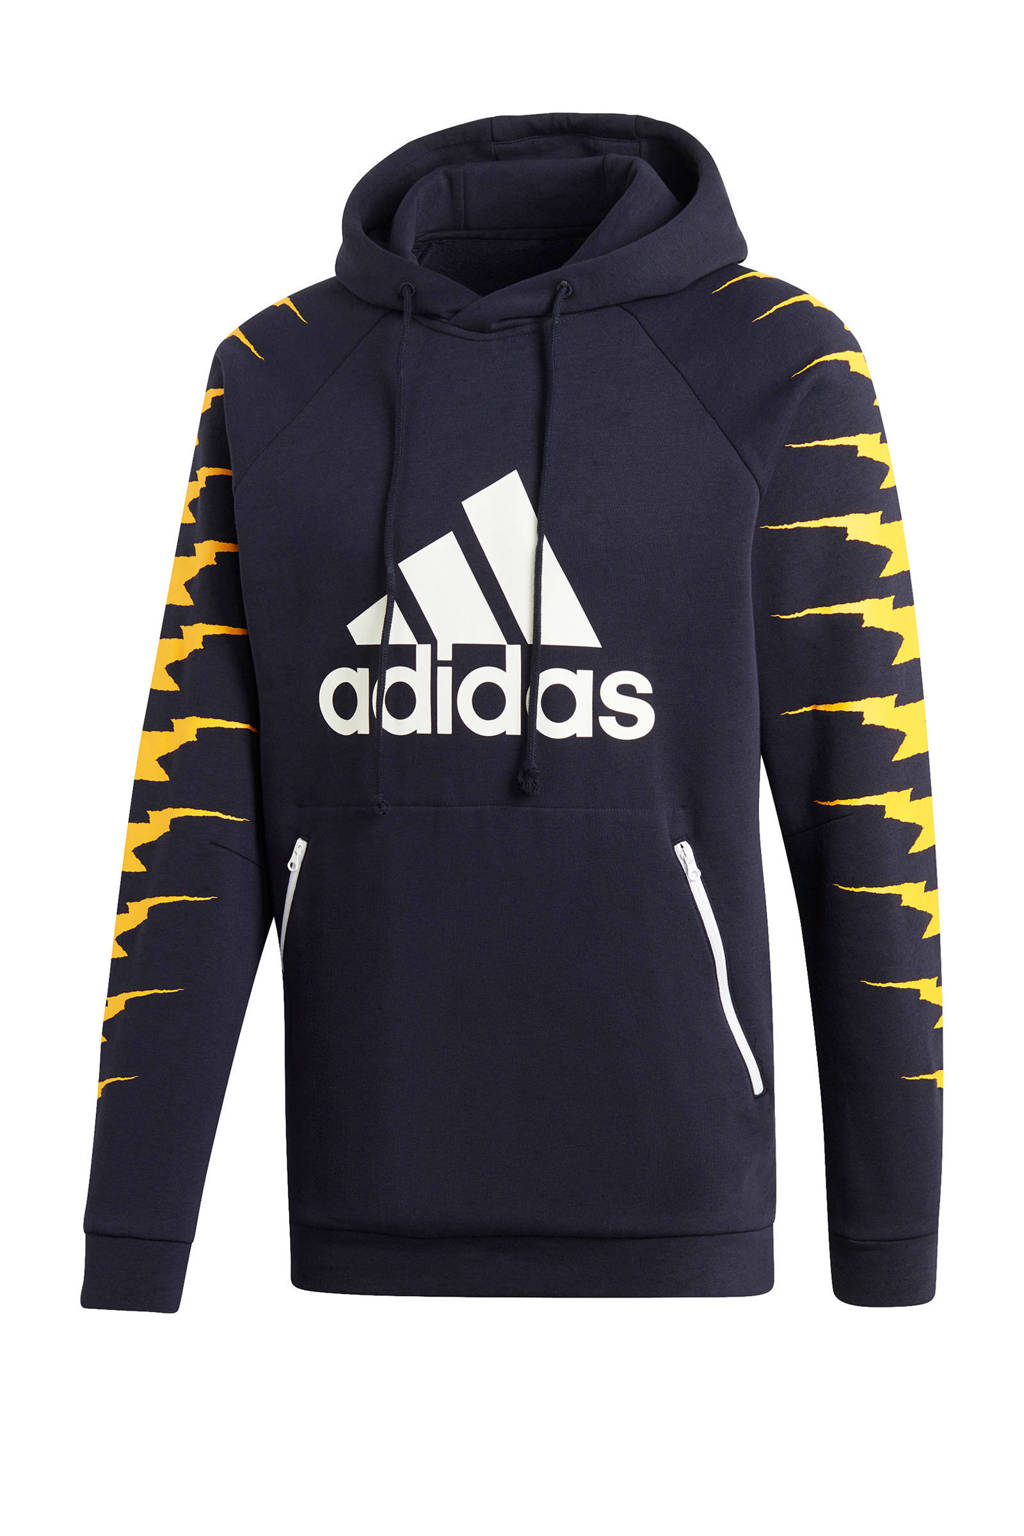 adidas performance   sportsweater donkerblauw, Donkerblauw/geel/wit